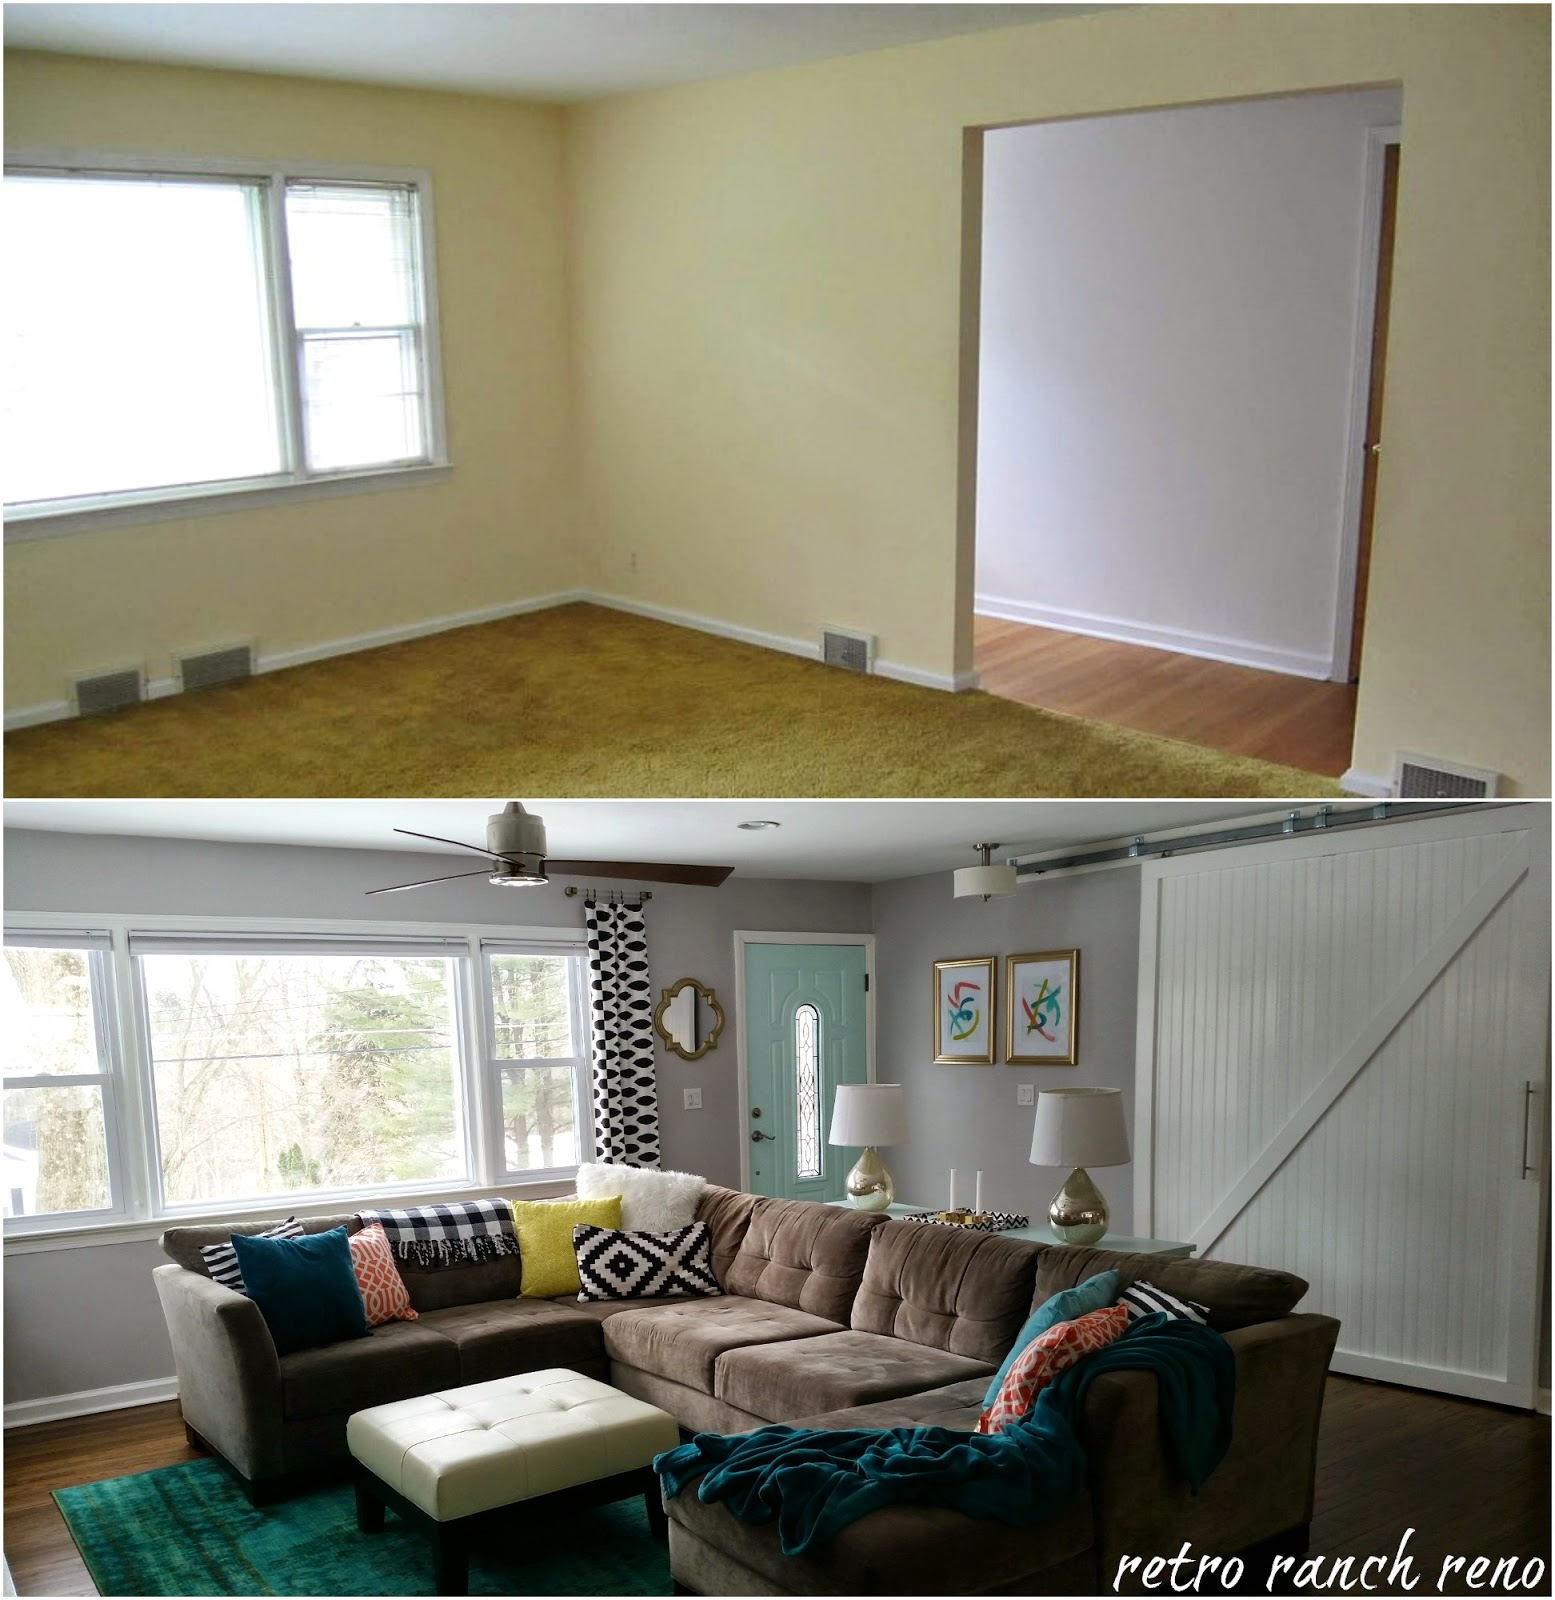 Living Room Renovation Before And After Retro Ranch Reno Our Rancher Before & After  The Living Room.